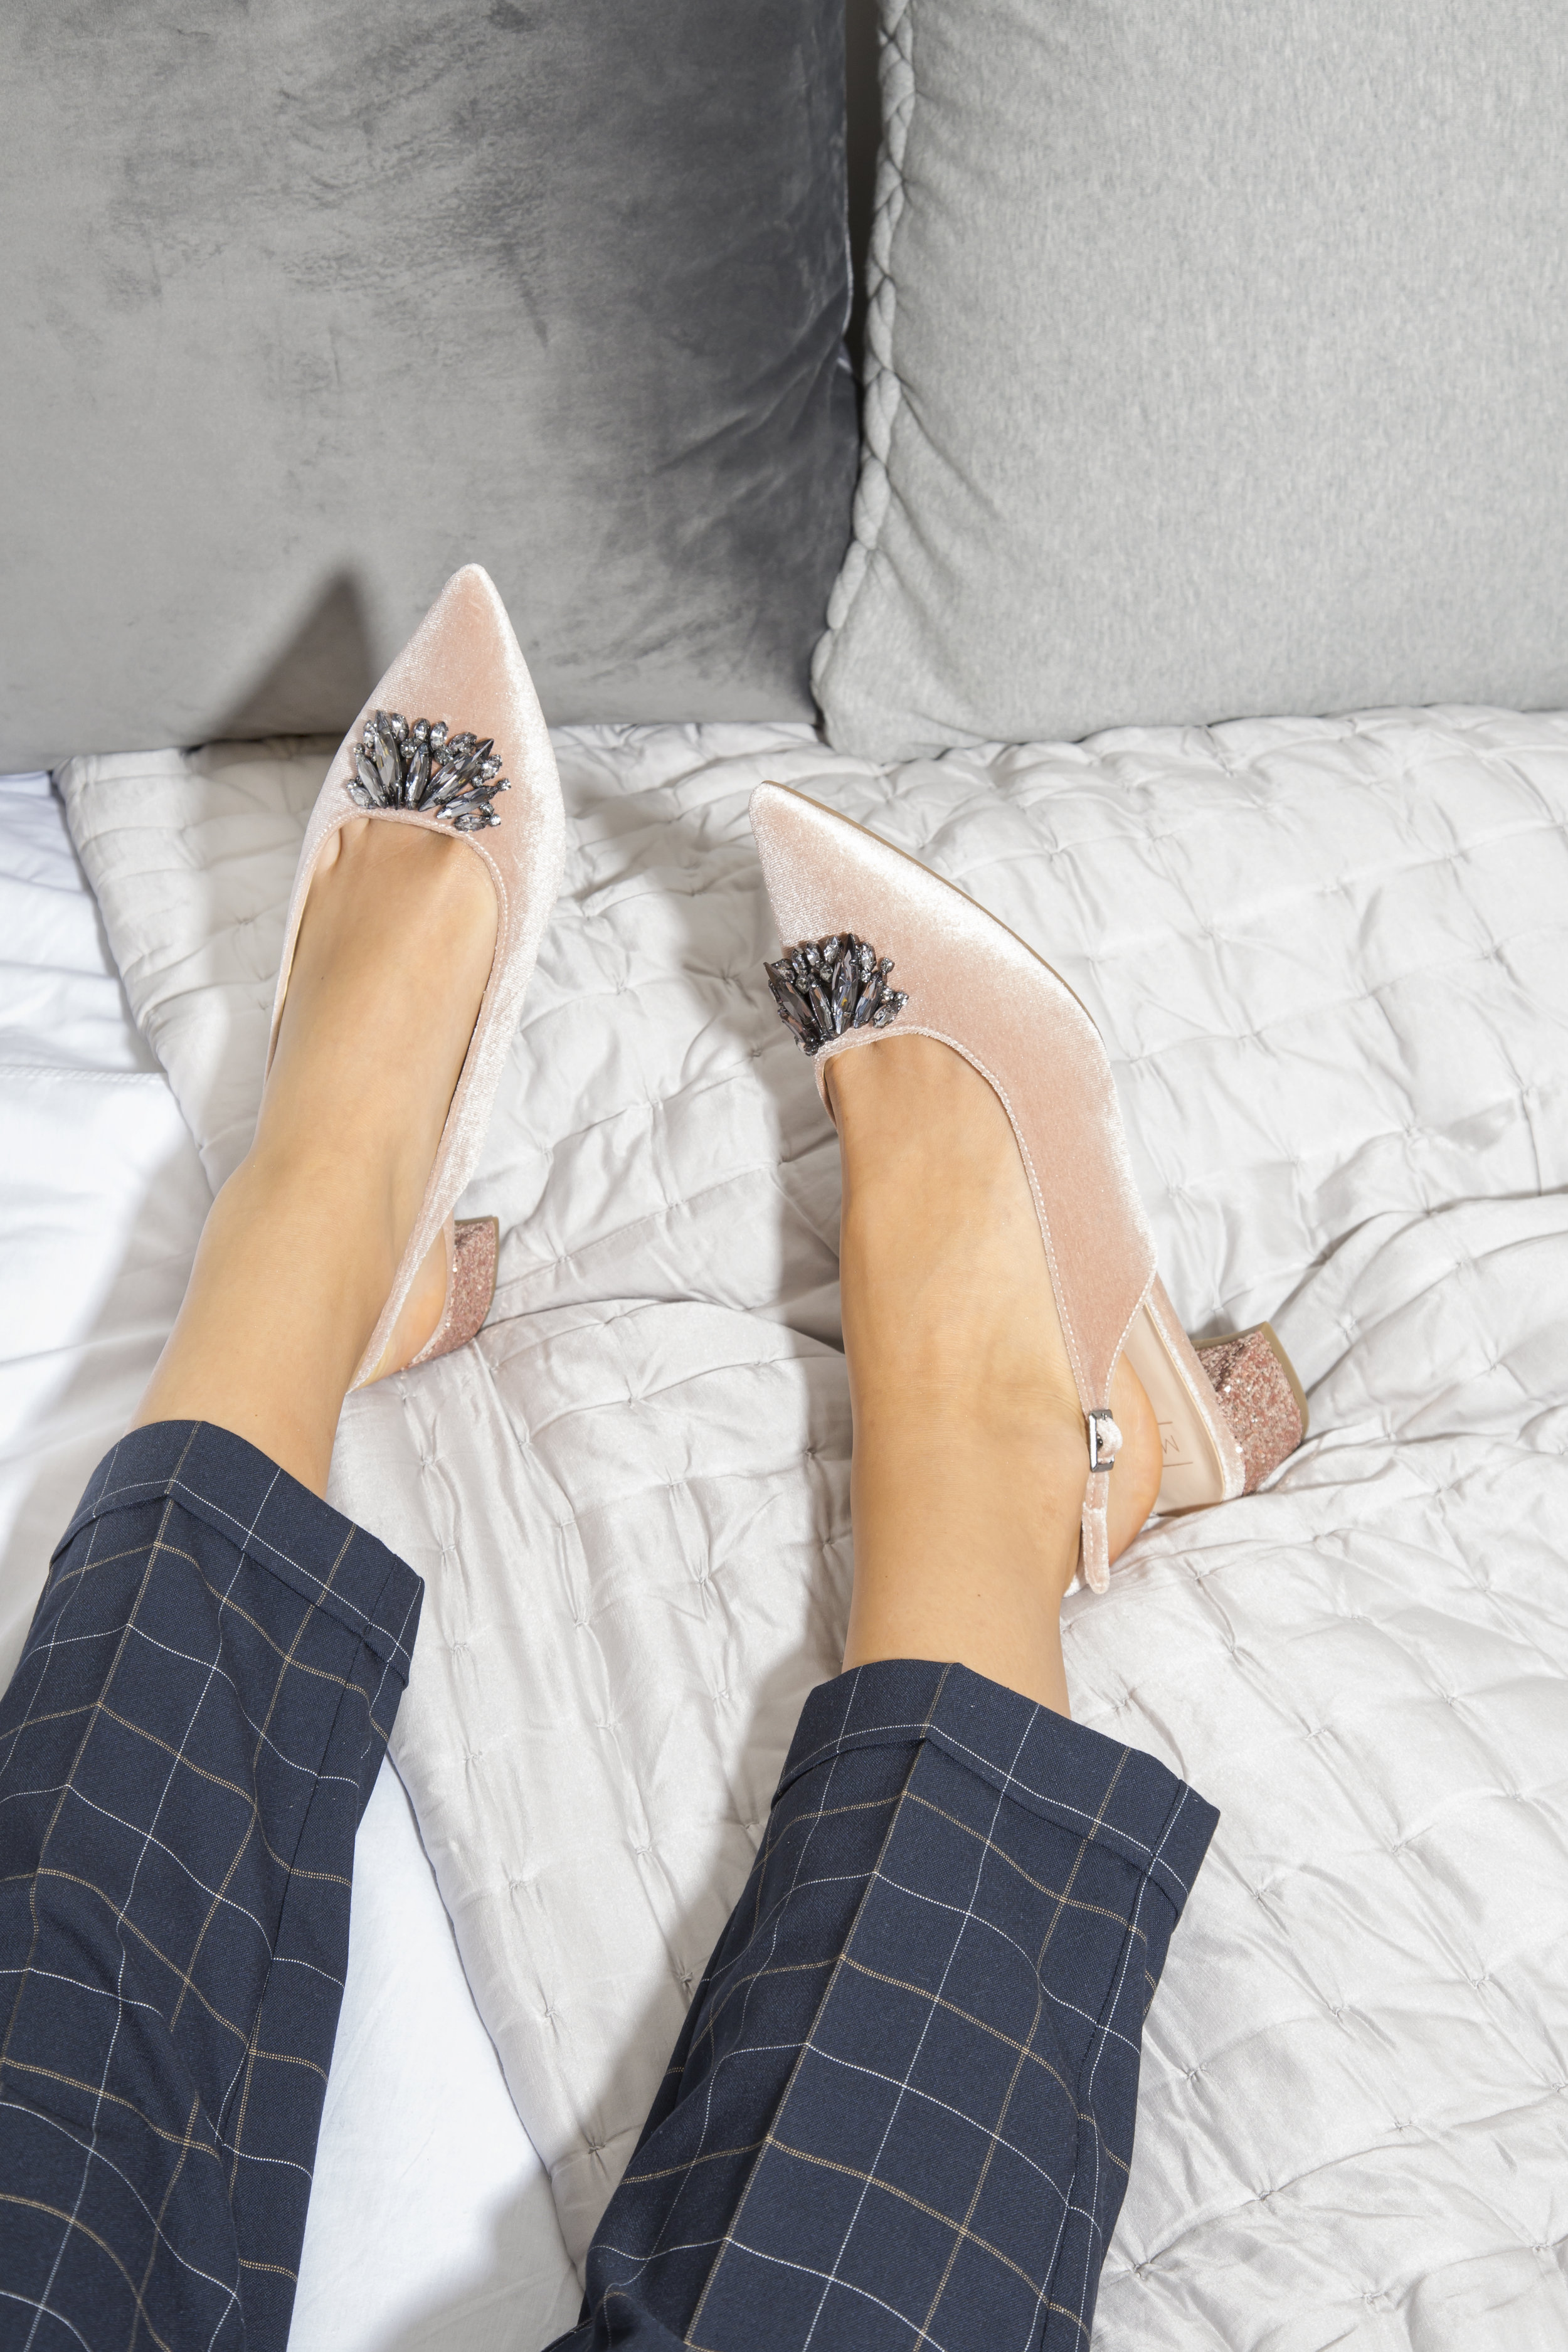 The Occasion Heel - Wear with checked trousers